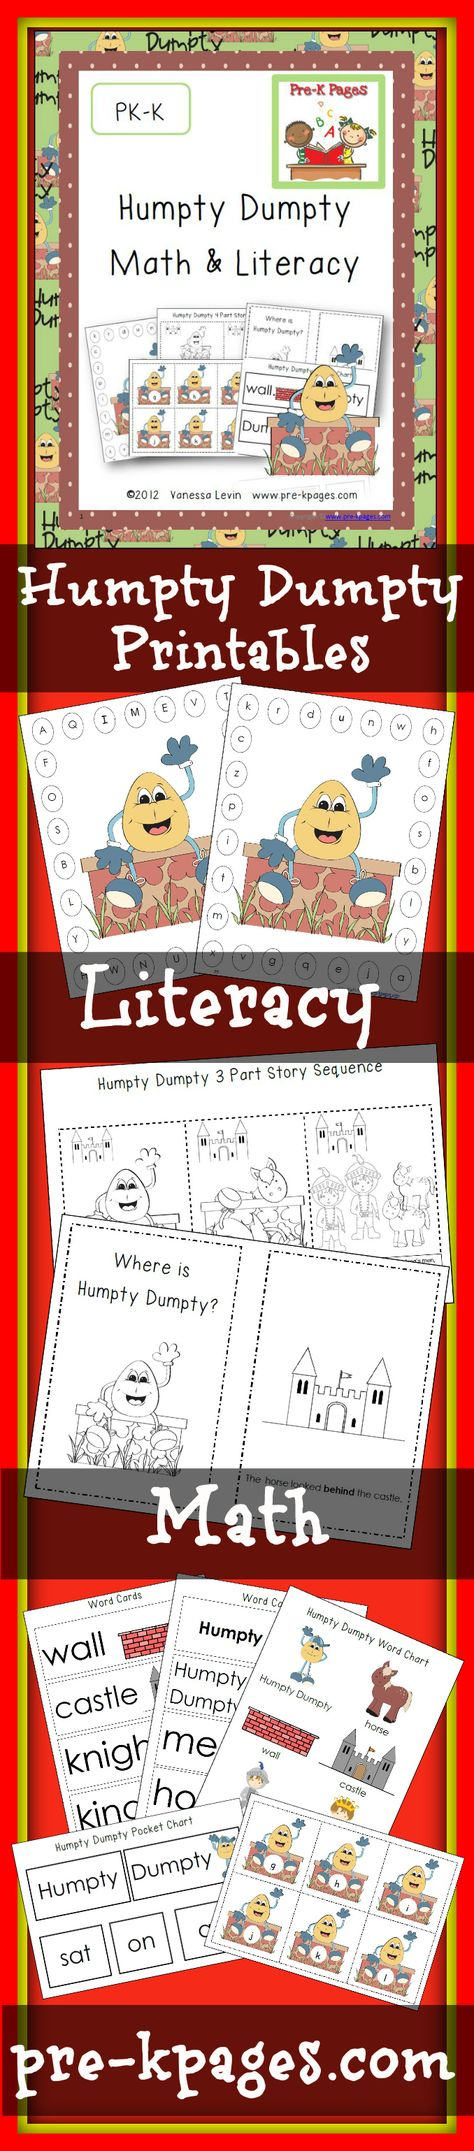 82 pages of literacy and math printables for the nursery rhyme Humpty